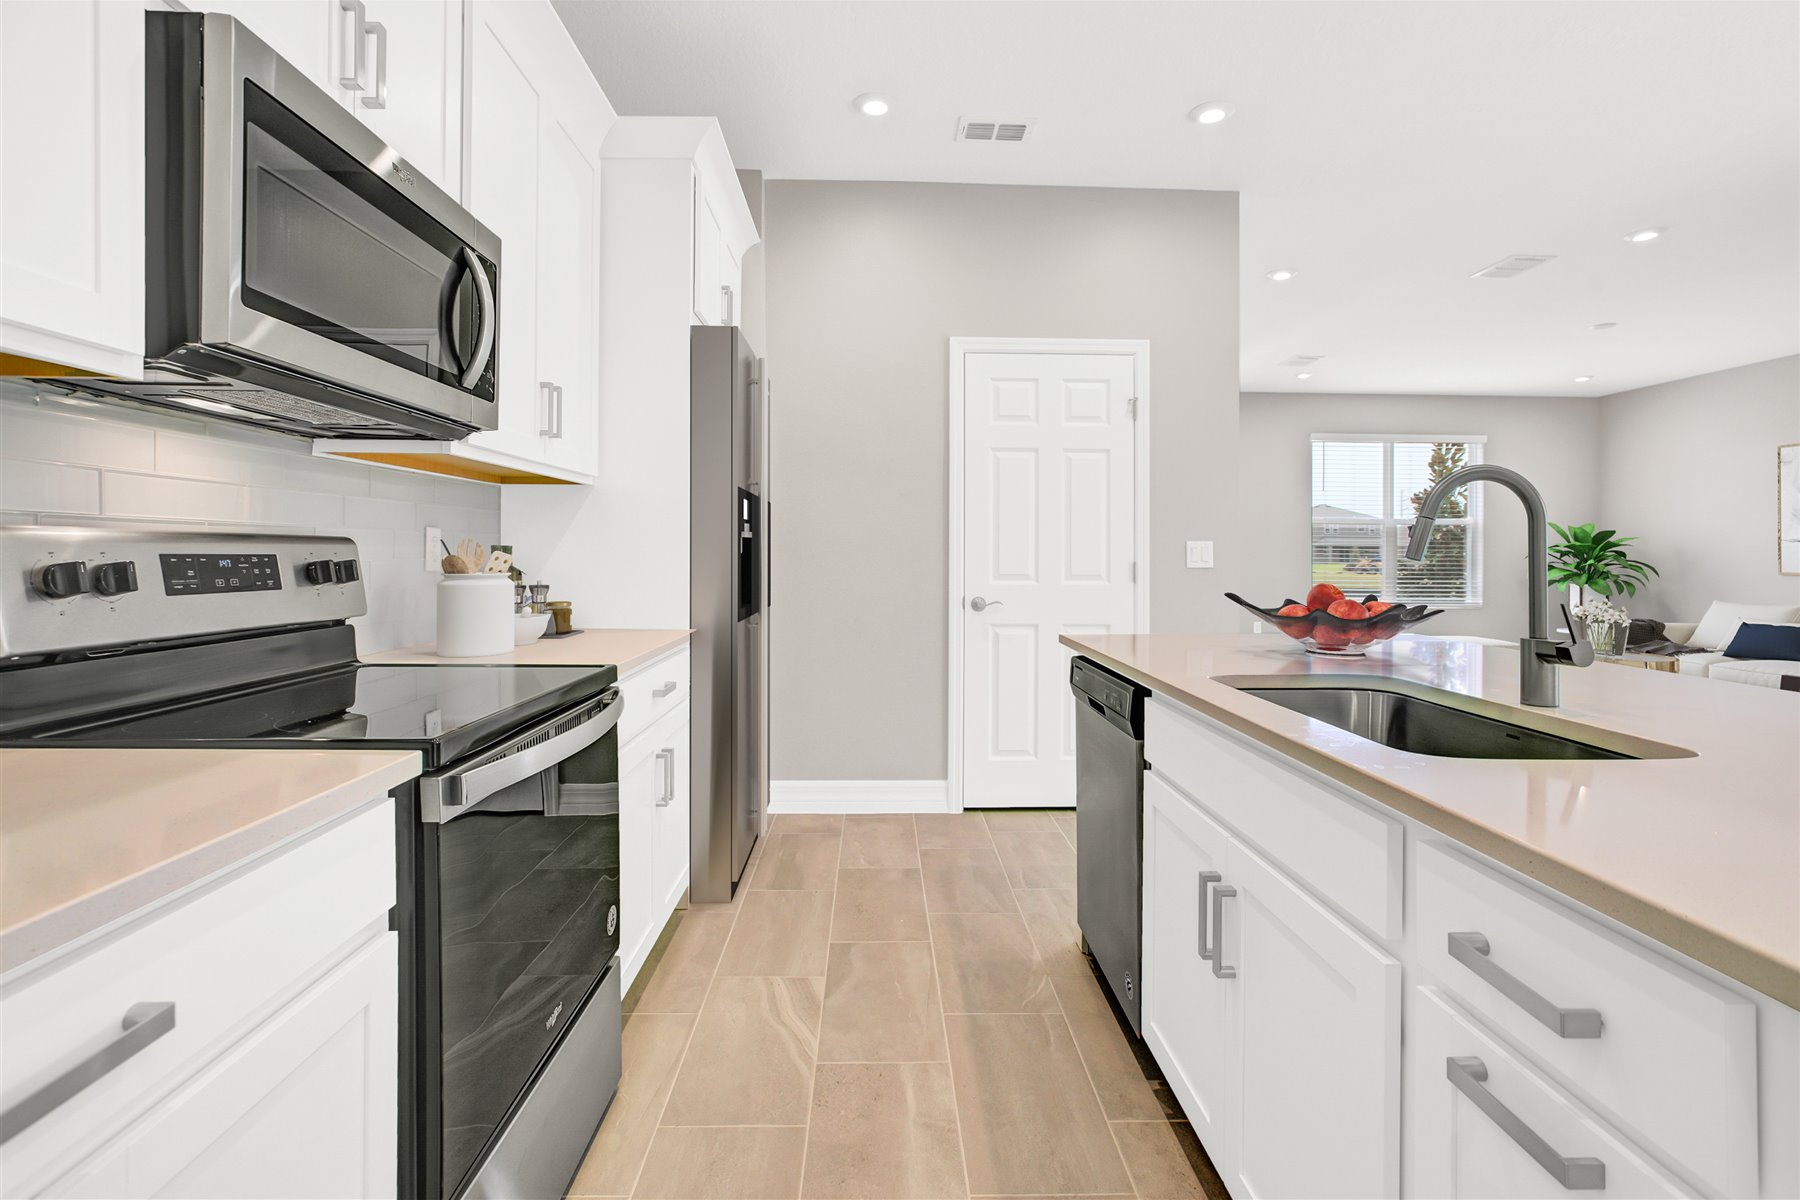 Belmont Plan Kitchen at Tohoqua in Kissimmee Florida by Mattamy Homes